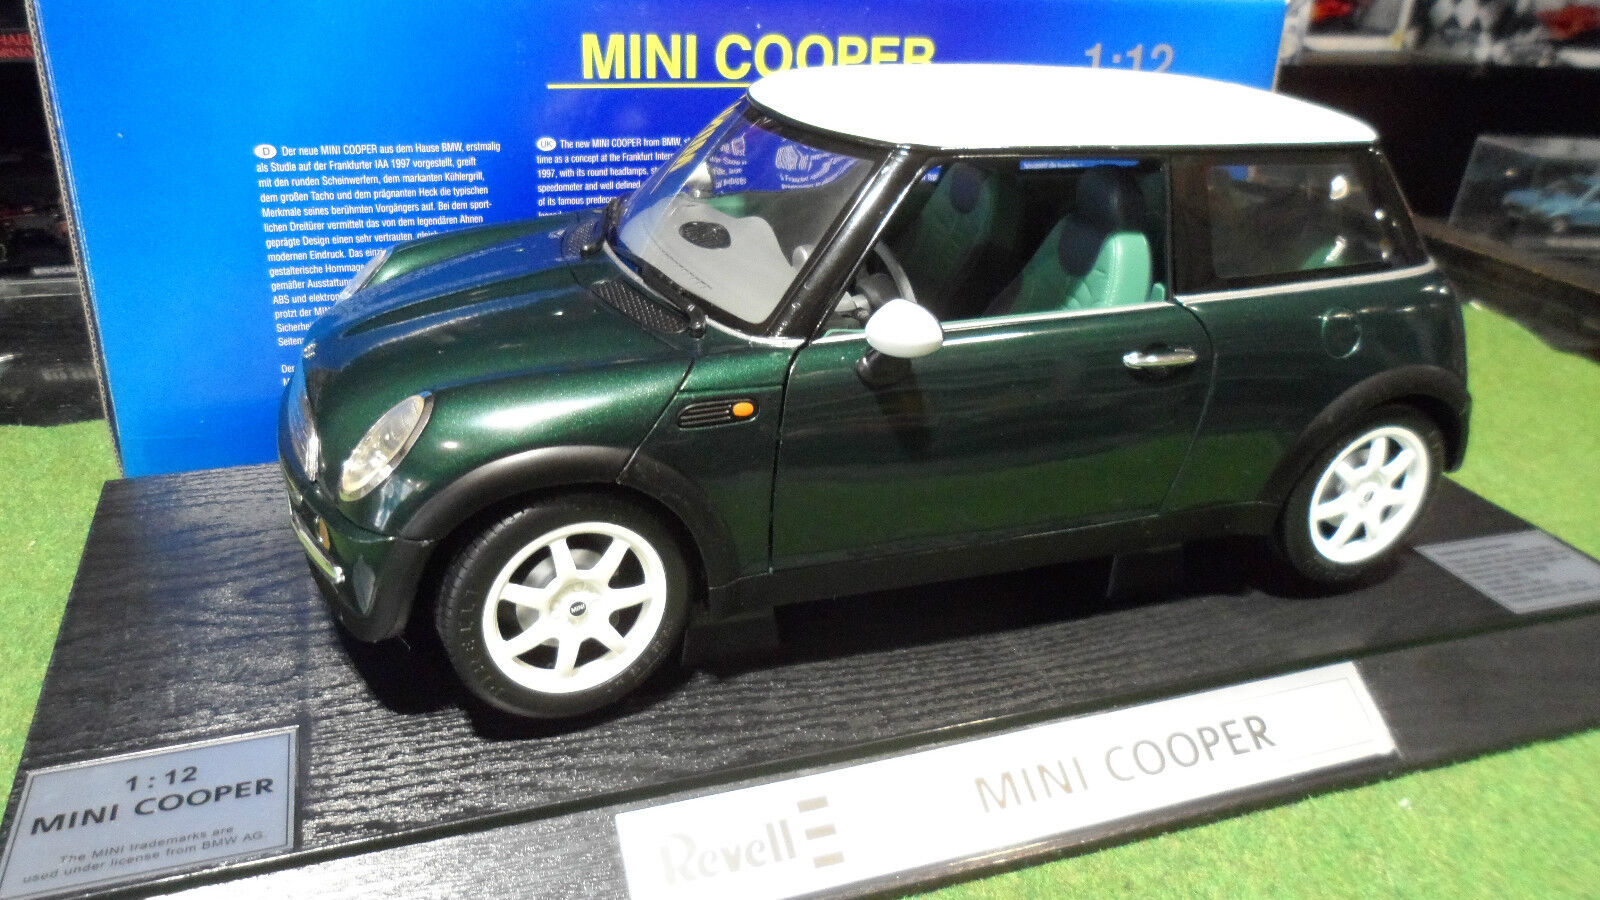 MINI COOPER green Left Hand Driven au 1 12 REVELL 08450 voiture miniature